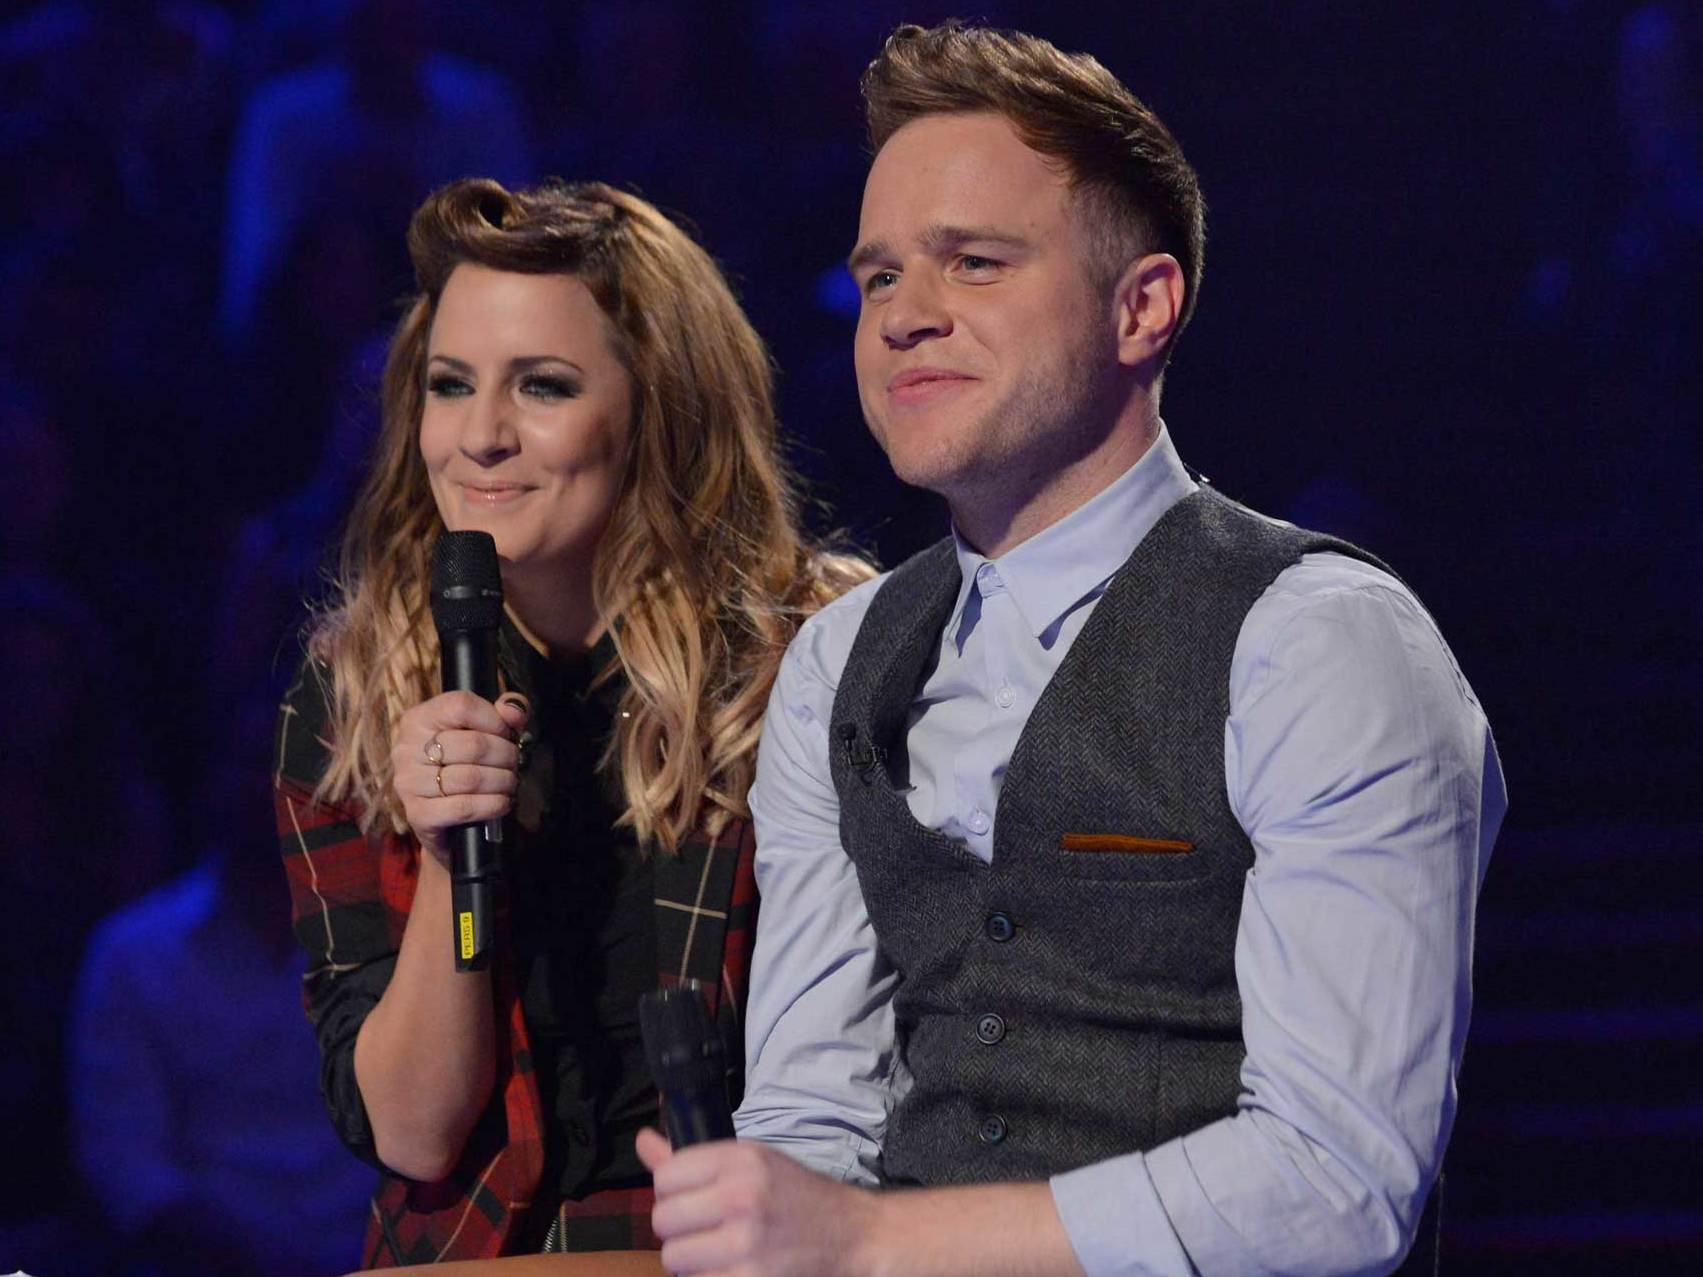 The Xtra Factor Comedian Matt Richardson To Co Present With Caroline Flack The Independent The Independent